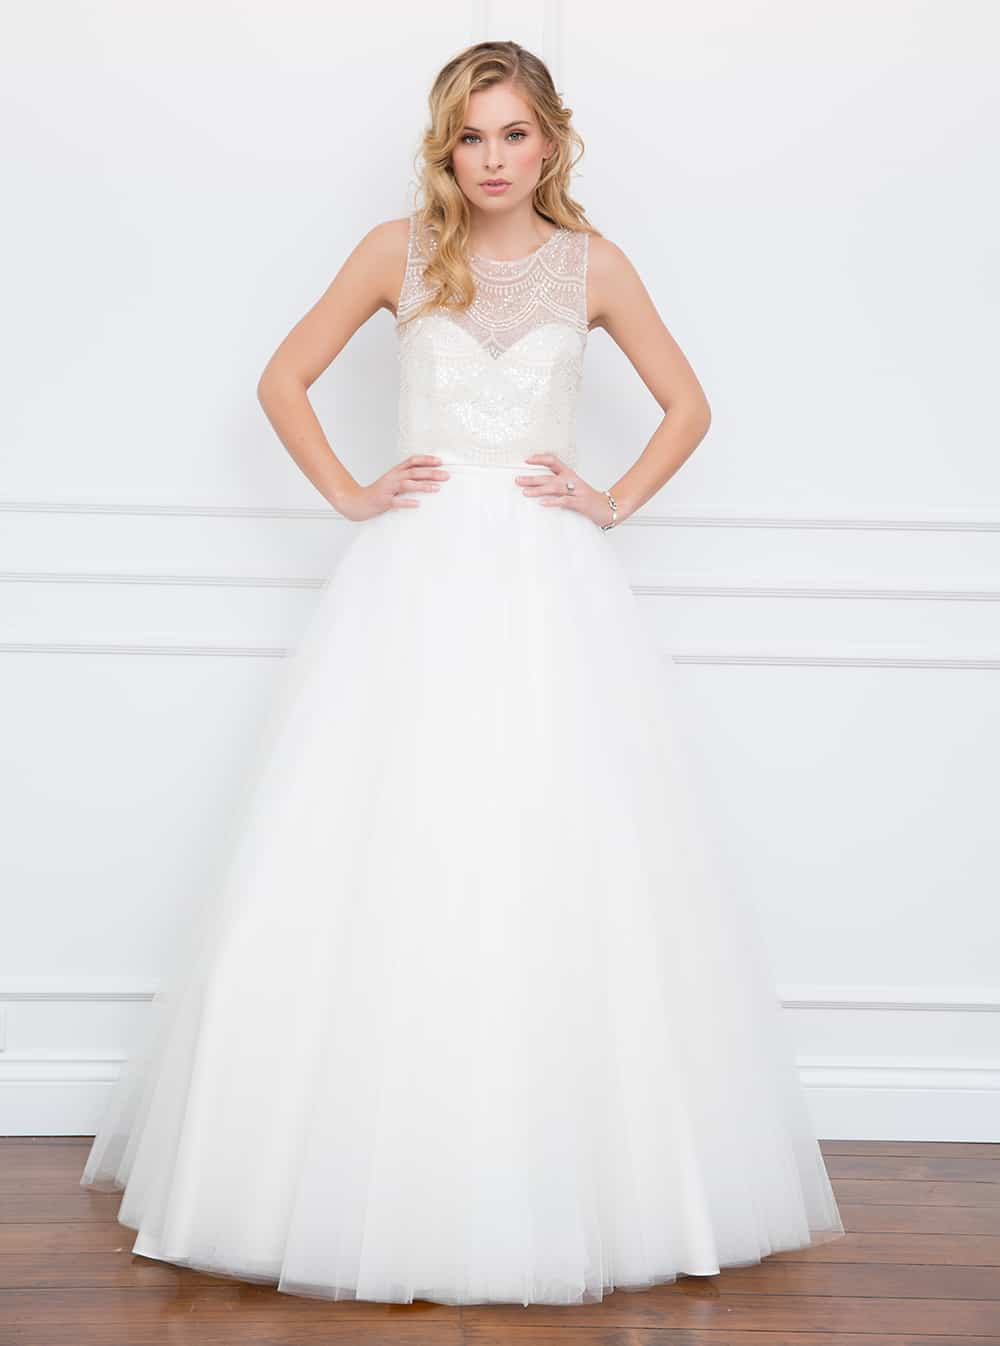 The Lulu wedding gown with sheer embellished bodice from Wendy Makin Couture.